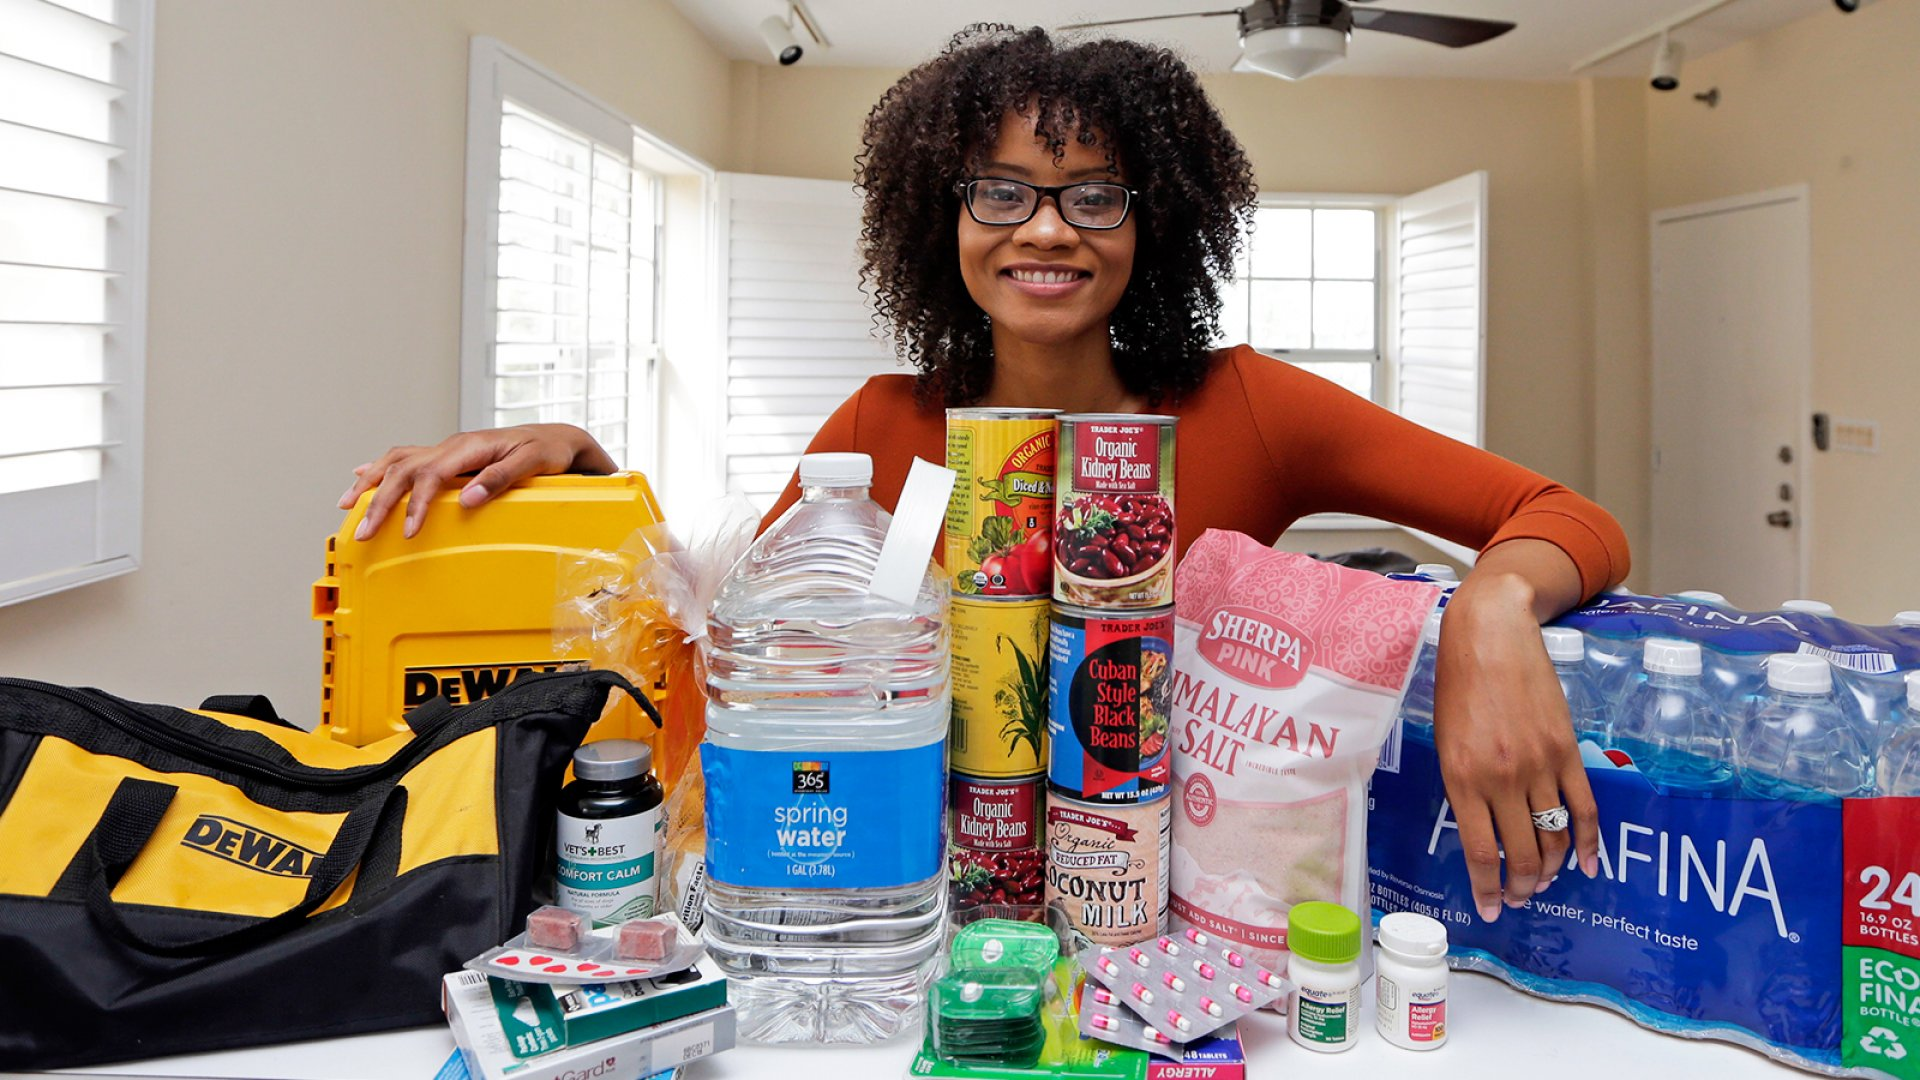 In this Friday, Sept. 29, 2017, photo, Lexi Montgomery poses with supplies she has purchased in the event of another storm, in Miami Beach, Fla. Hurricane Irma was the first hurricane that Montgomery ever experienced.